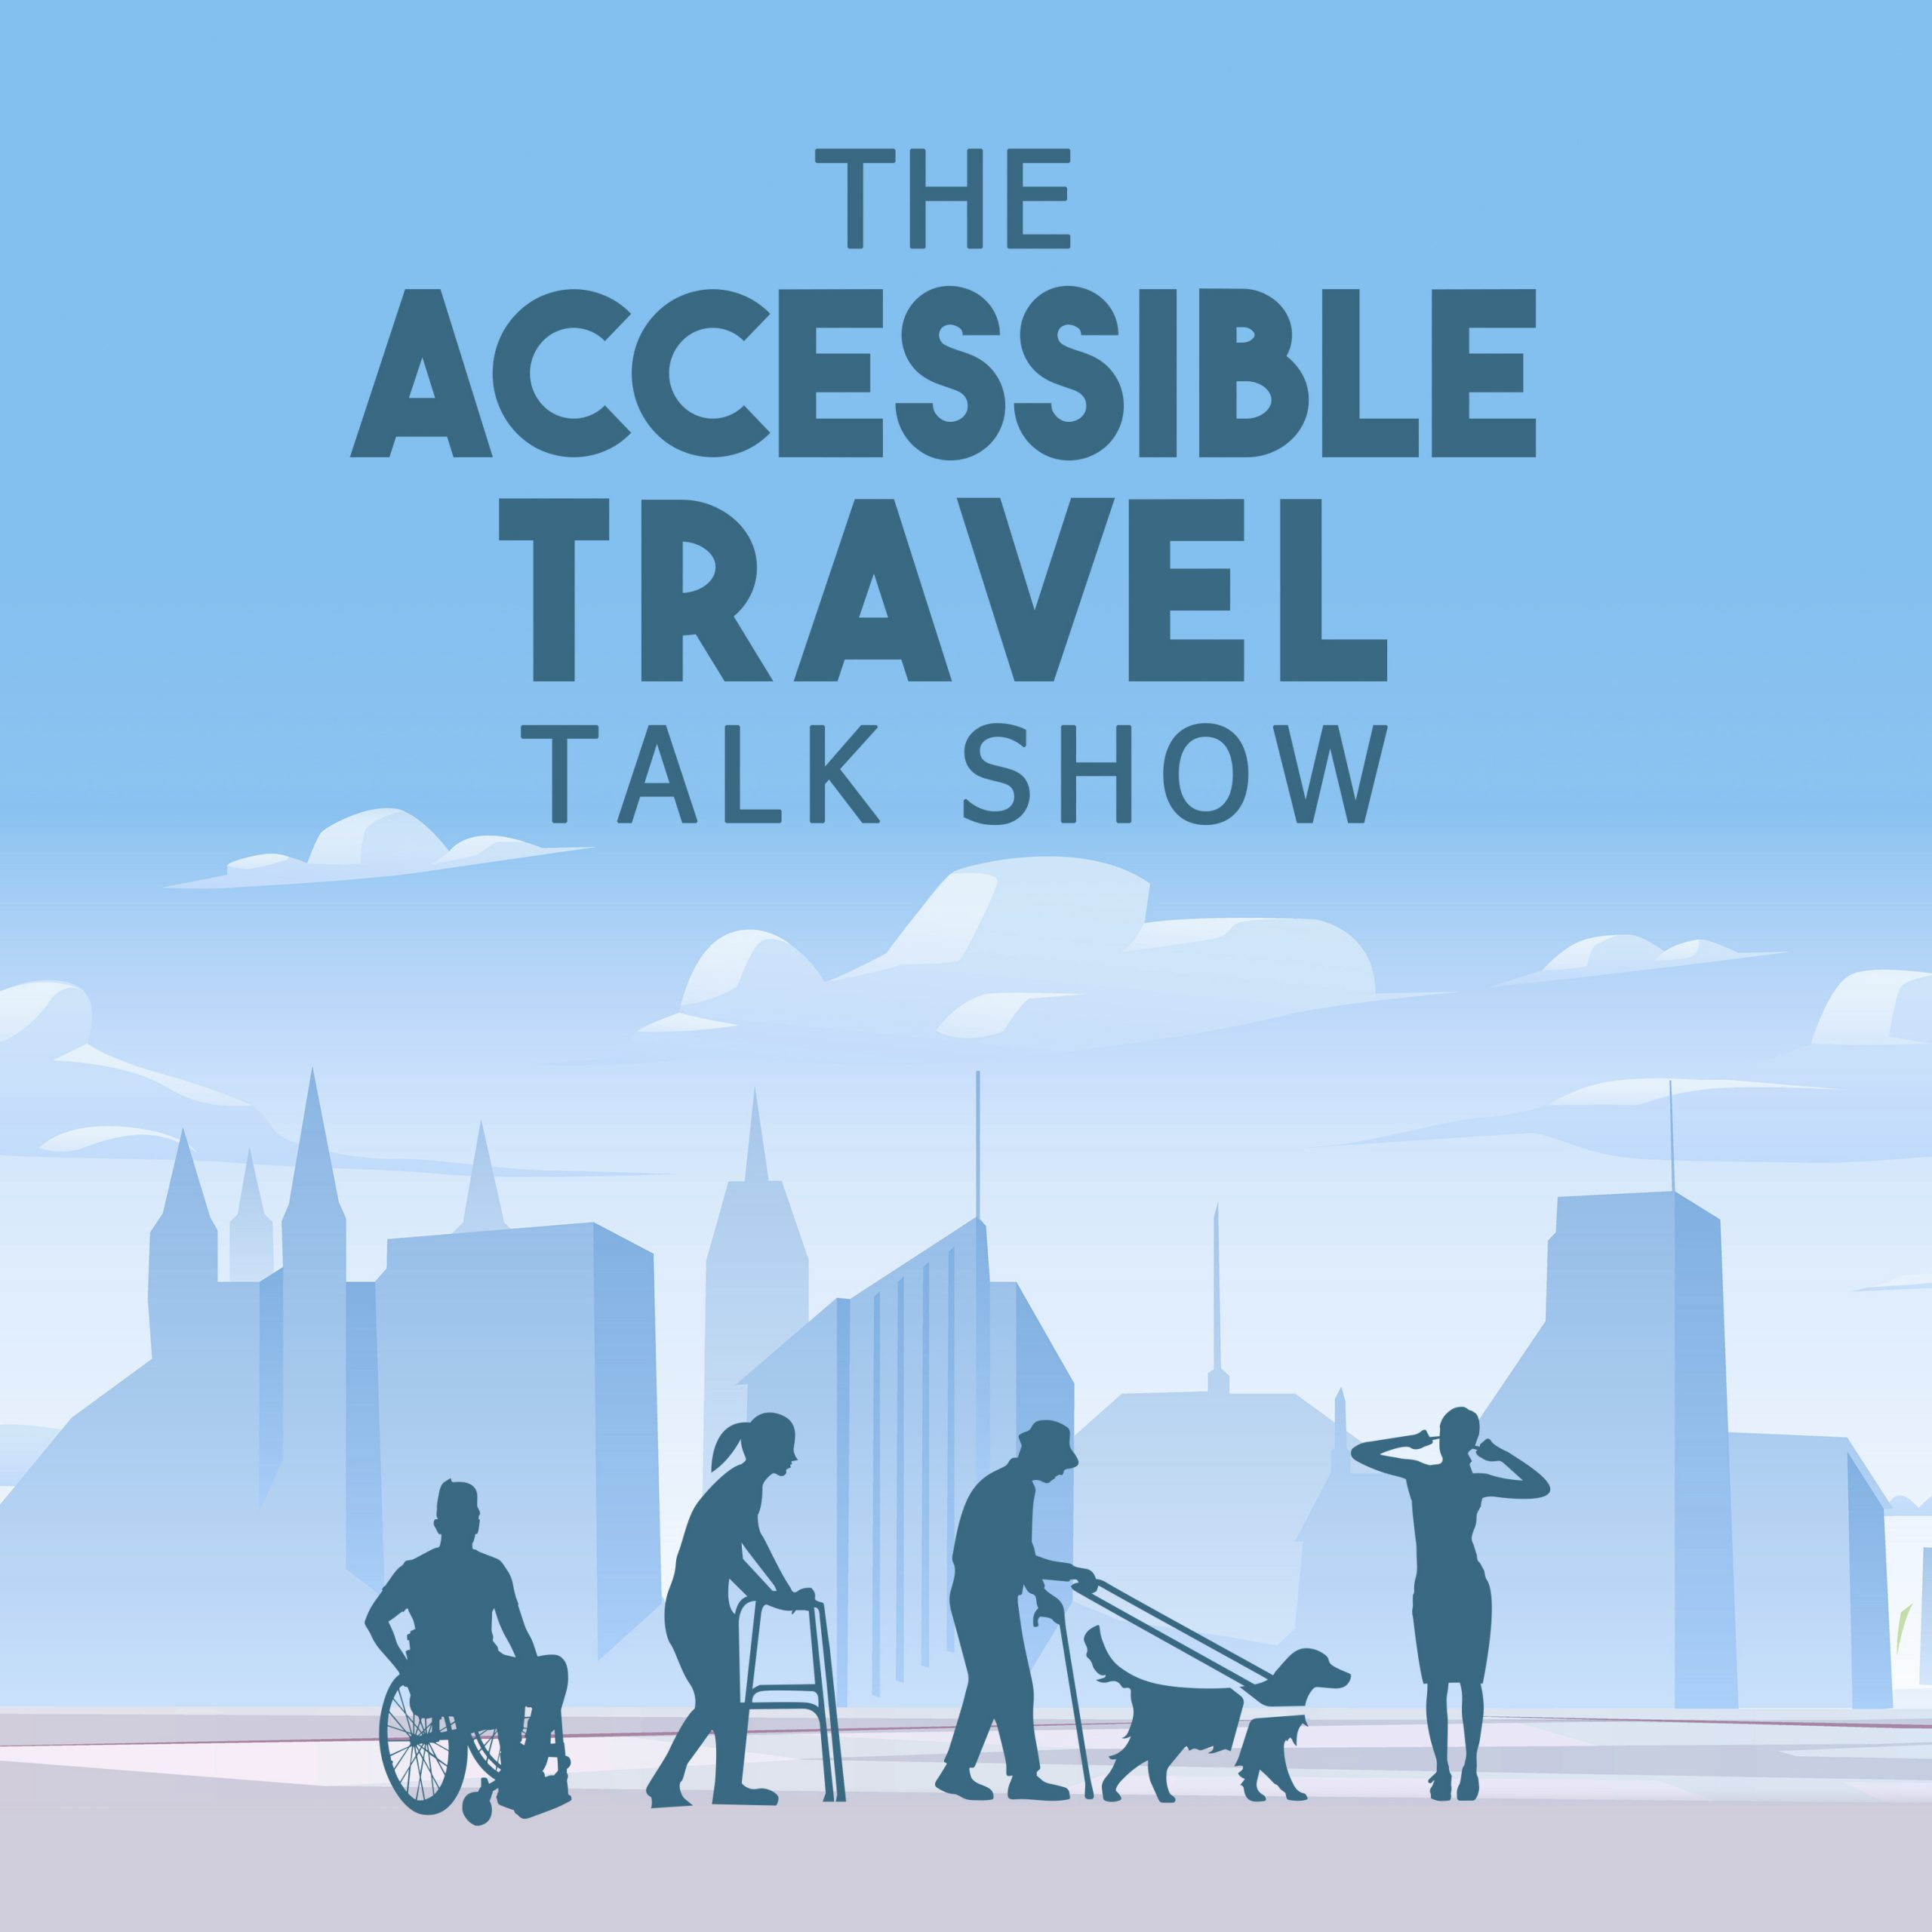 The Accessible Travel Talk Show